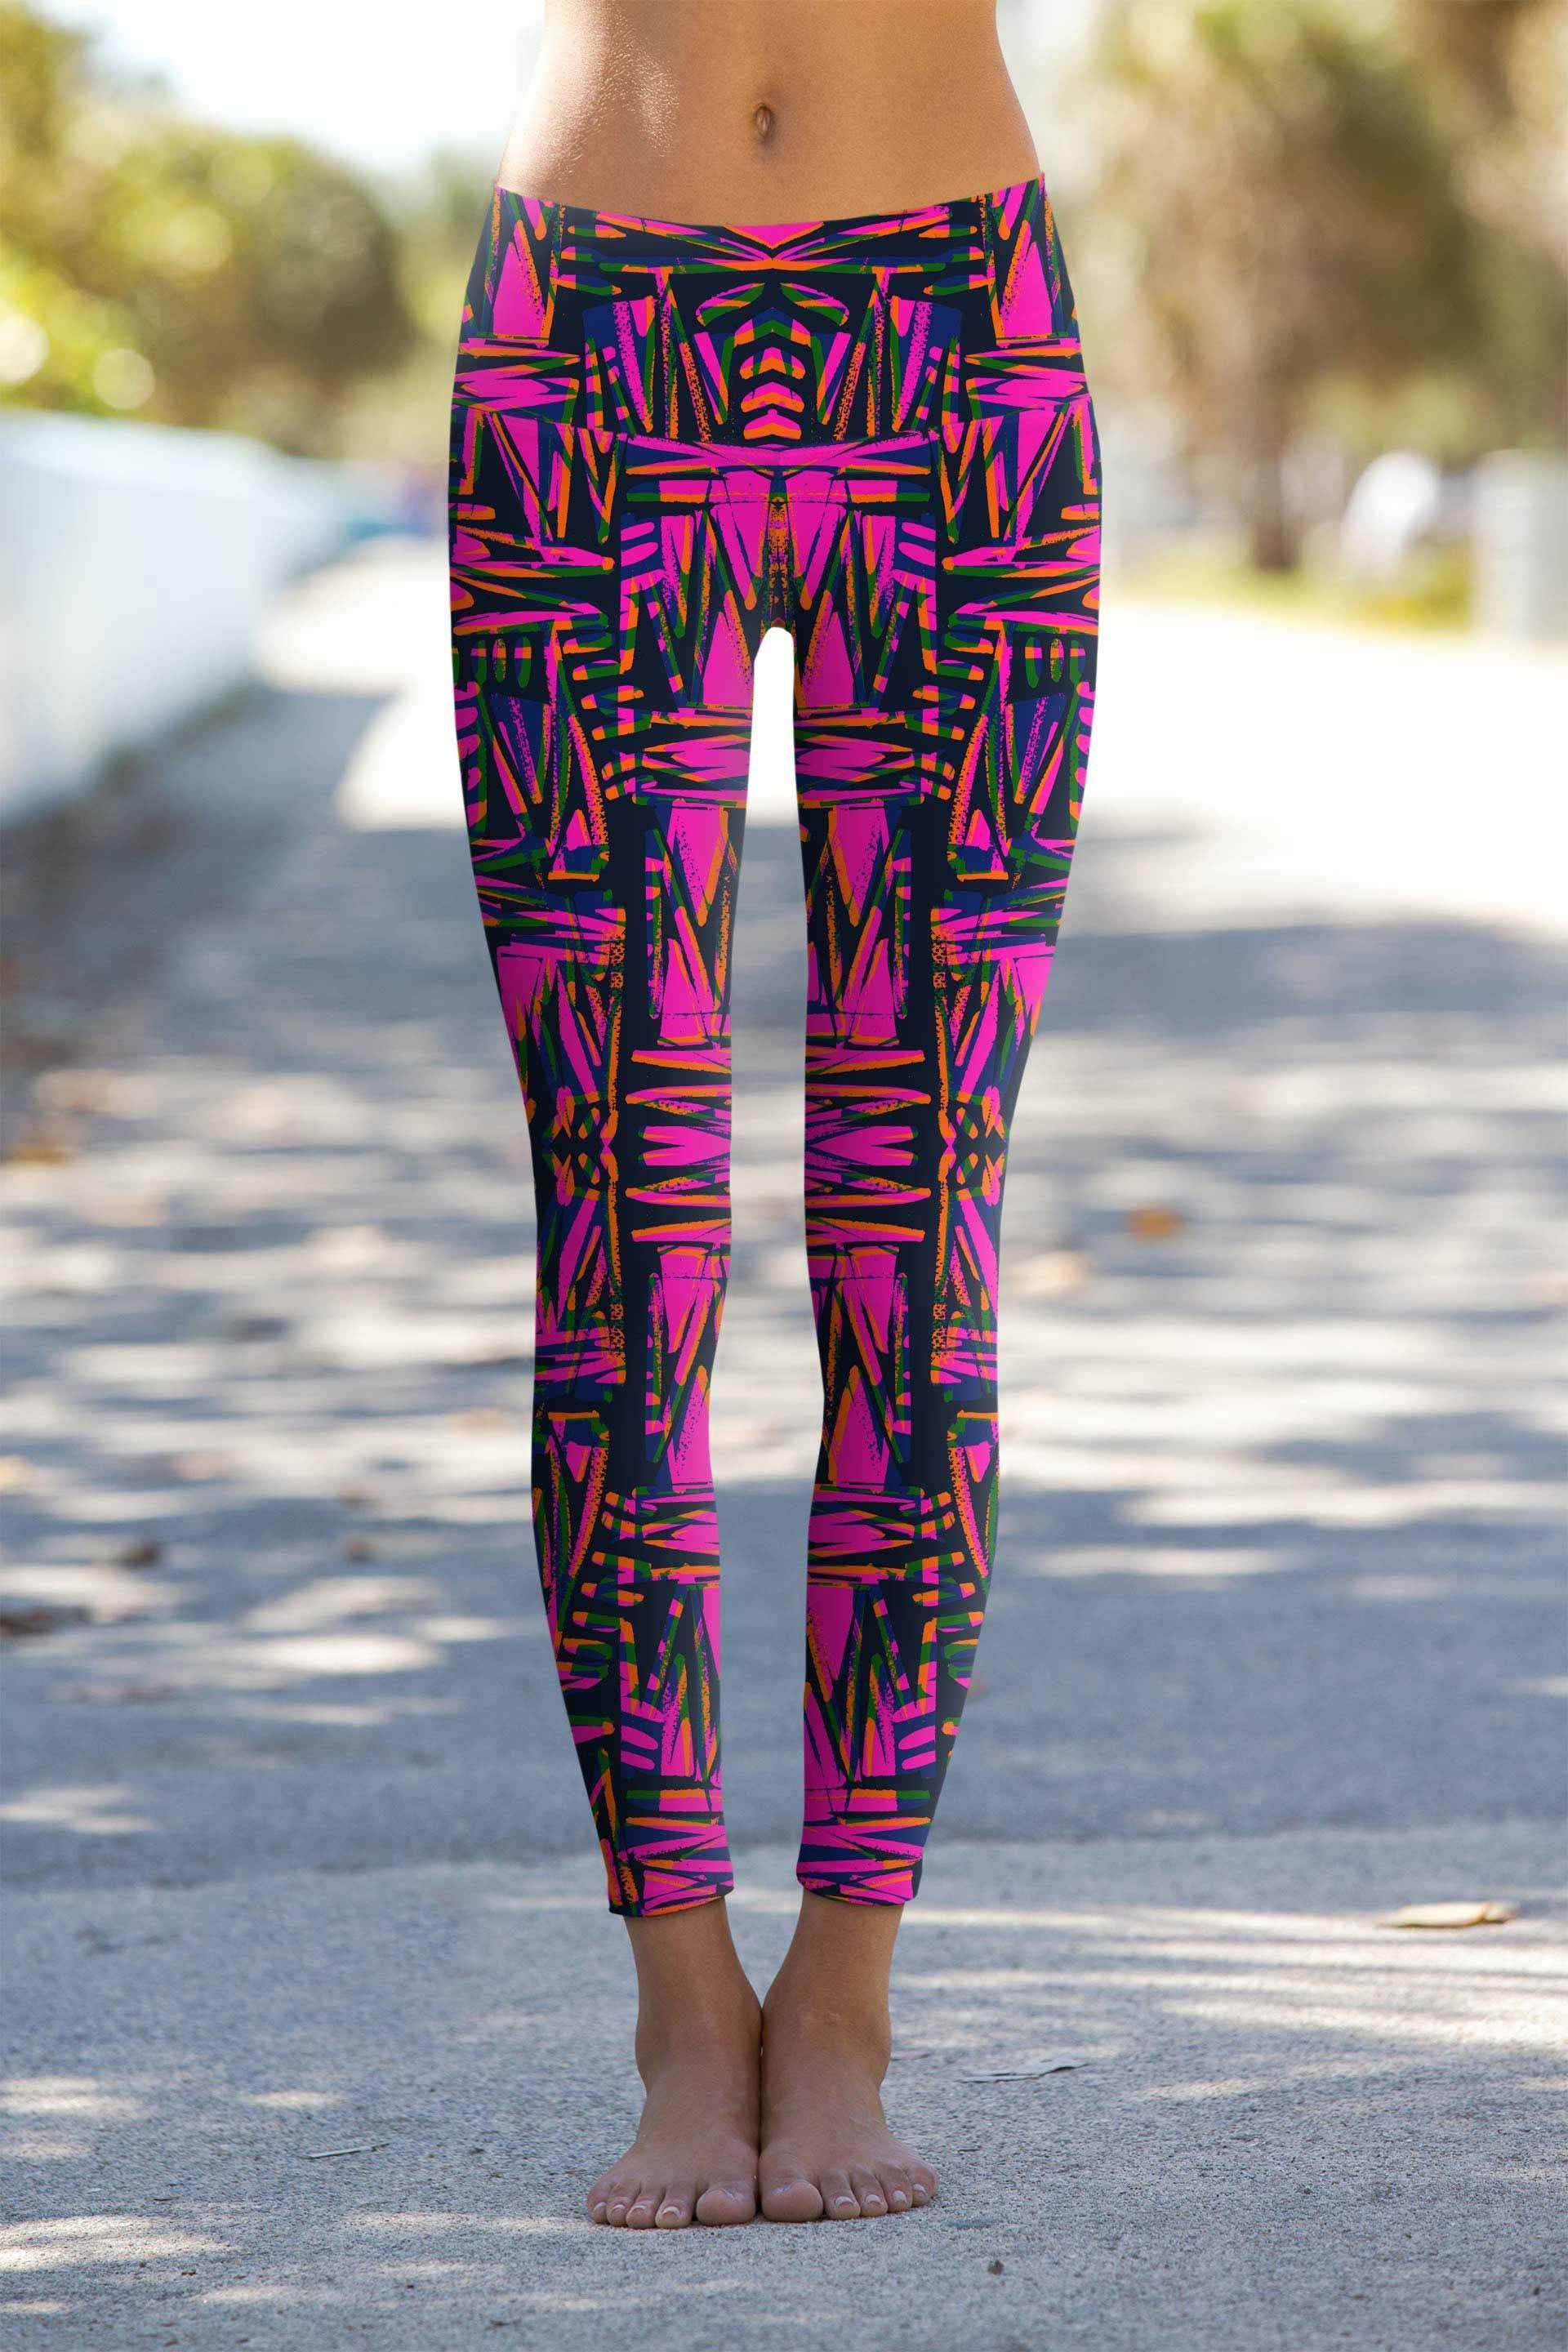 a7b8bc7ad1122 Ego Lucy Printed Performance Yoga Leggings - Women | FashionTerras ...